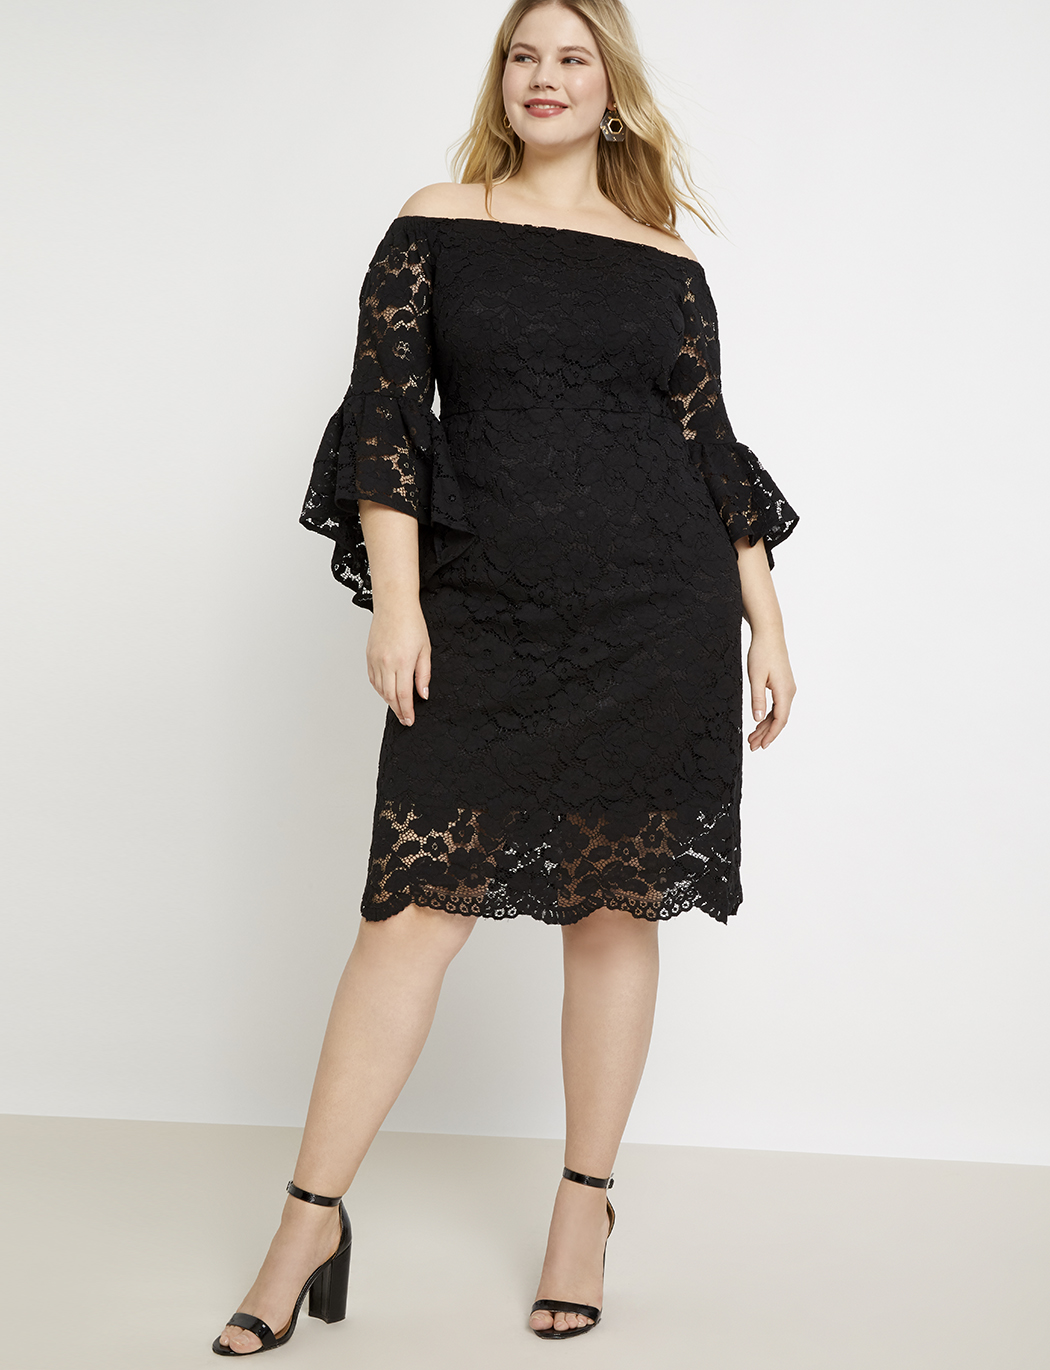 Off the Shoulder Flare Sleeve Lace Dress | Women\'s Plus Size Dresses |  ELOQUII